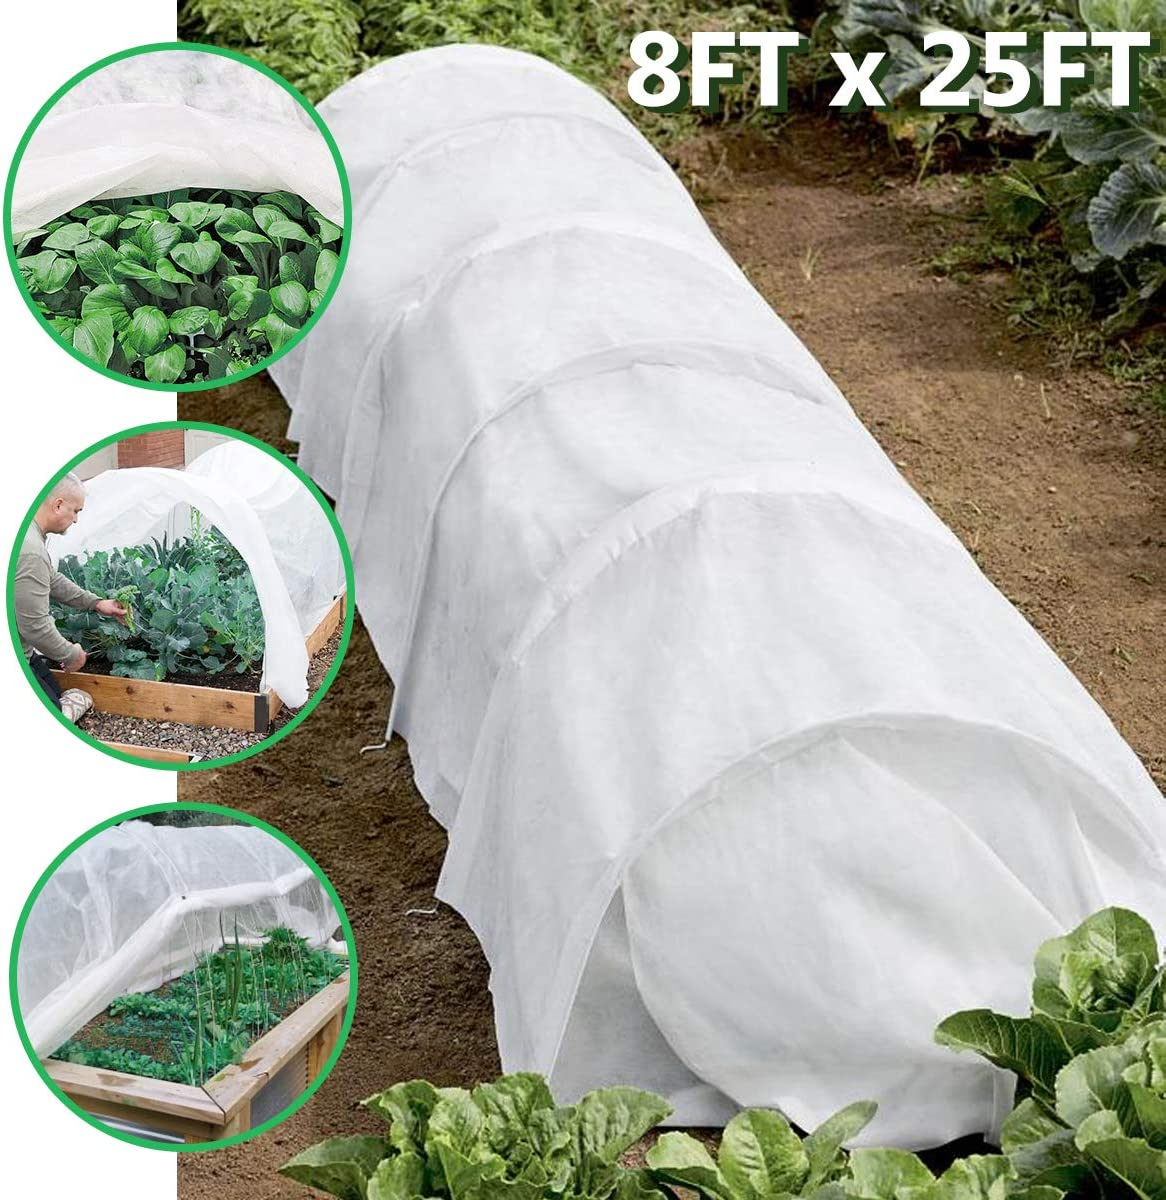 Floating Row Cover, 8FT x 25FT Large Plant Covers Freeze Protection Blankets for Plants, Fruits and Vegetables in Garden,Anti Severe Weather,Breathable,Light Permeable,1 Pack